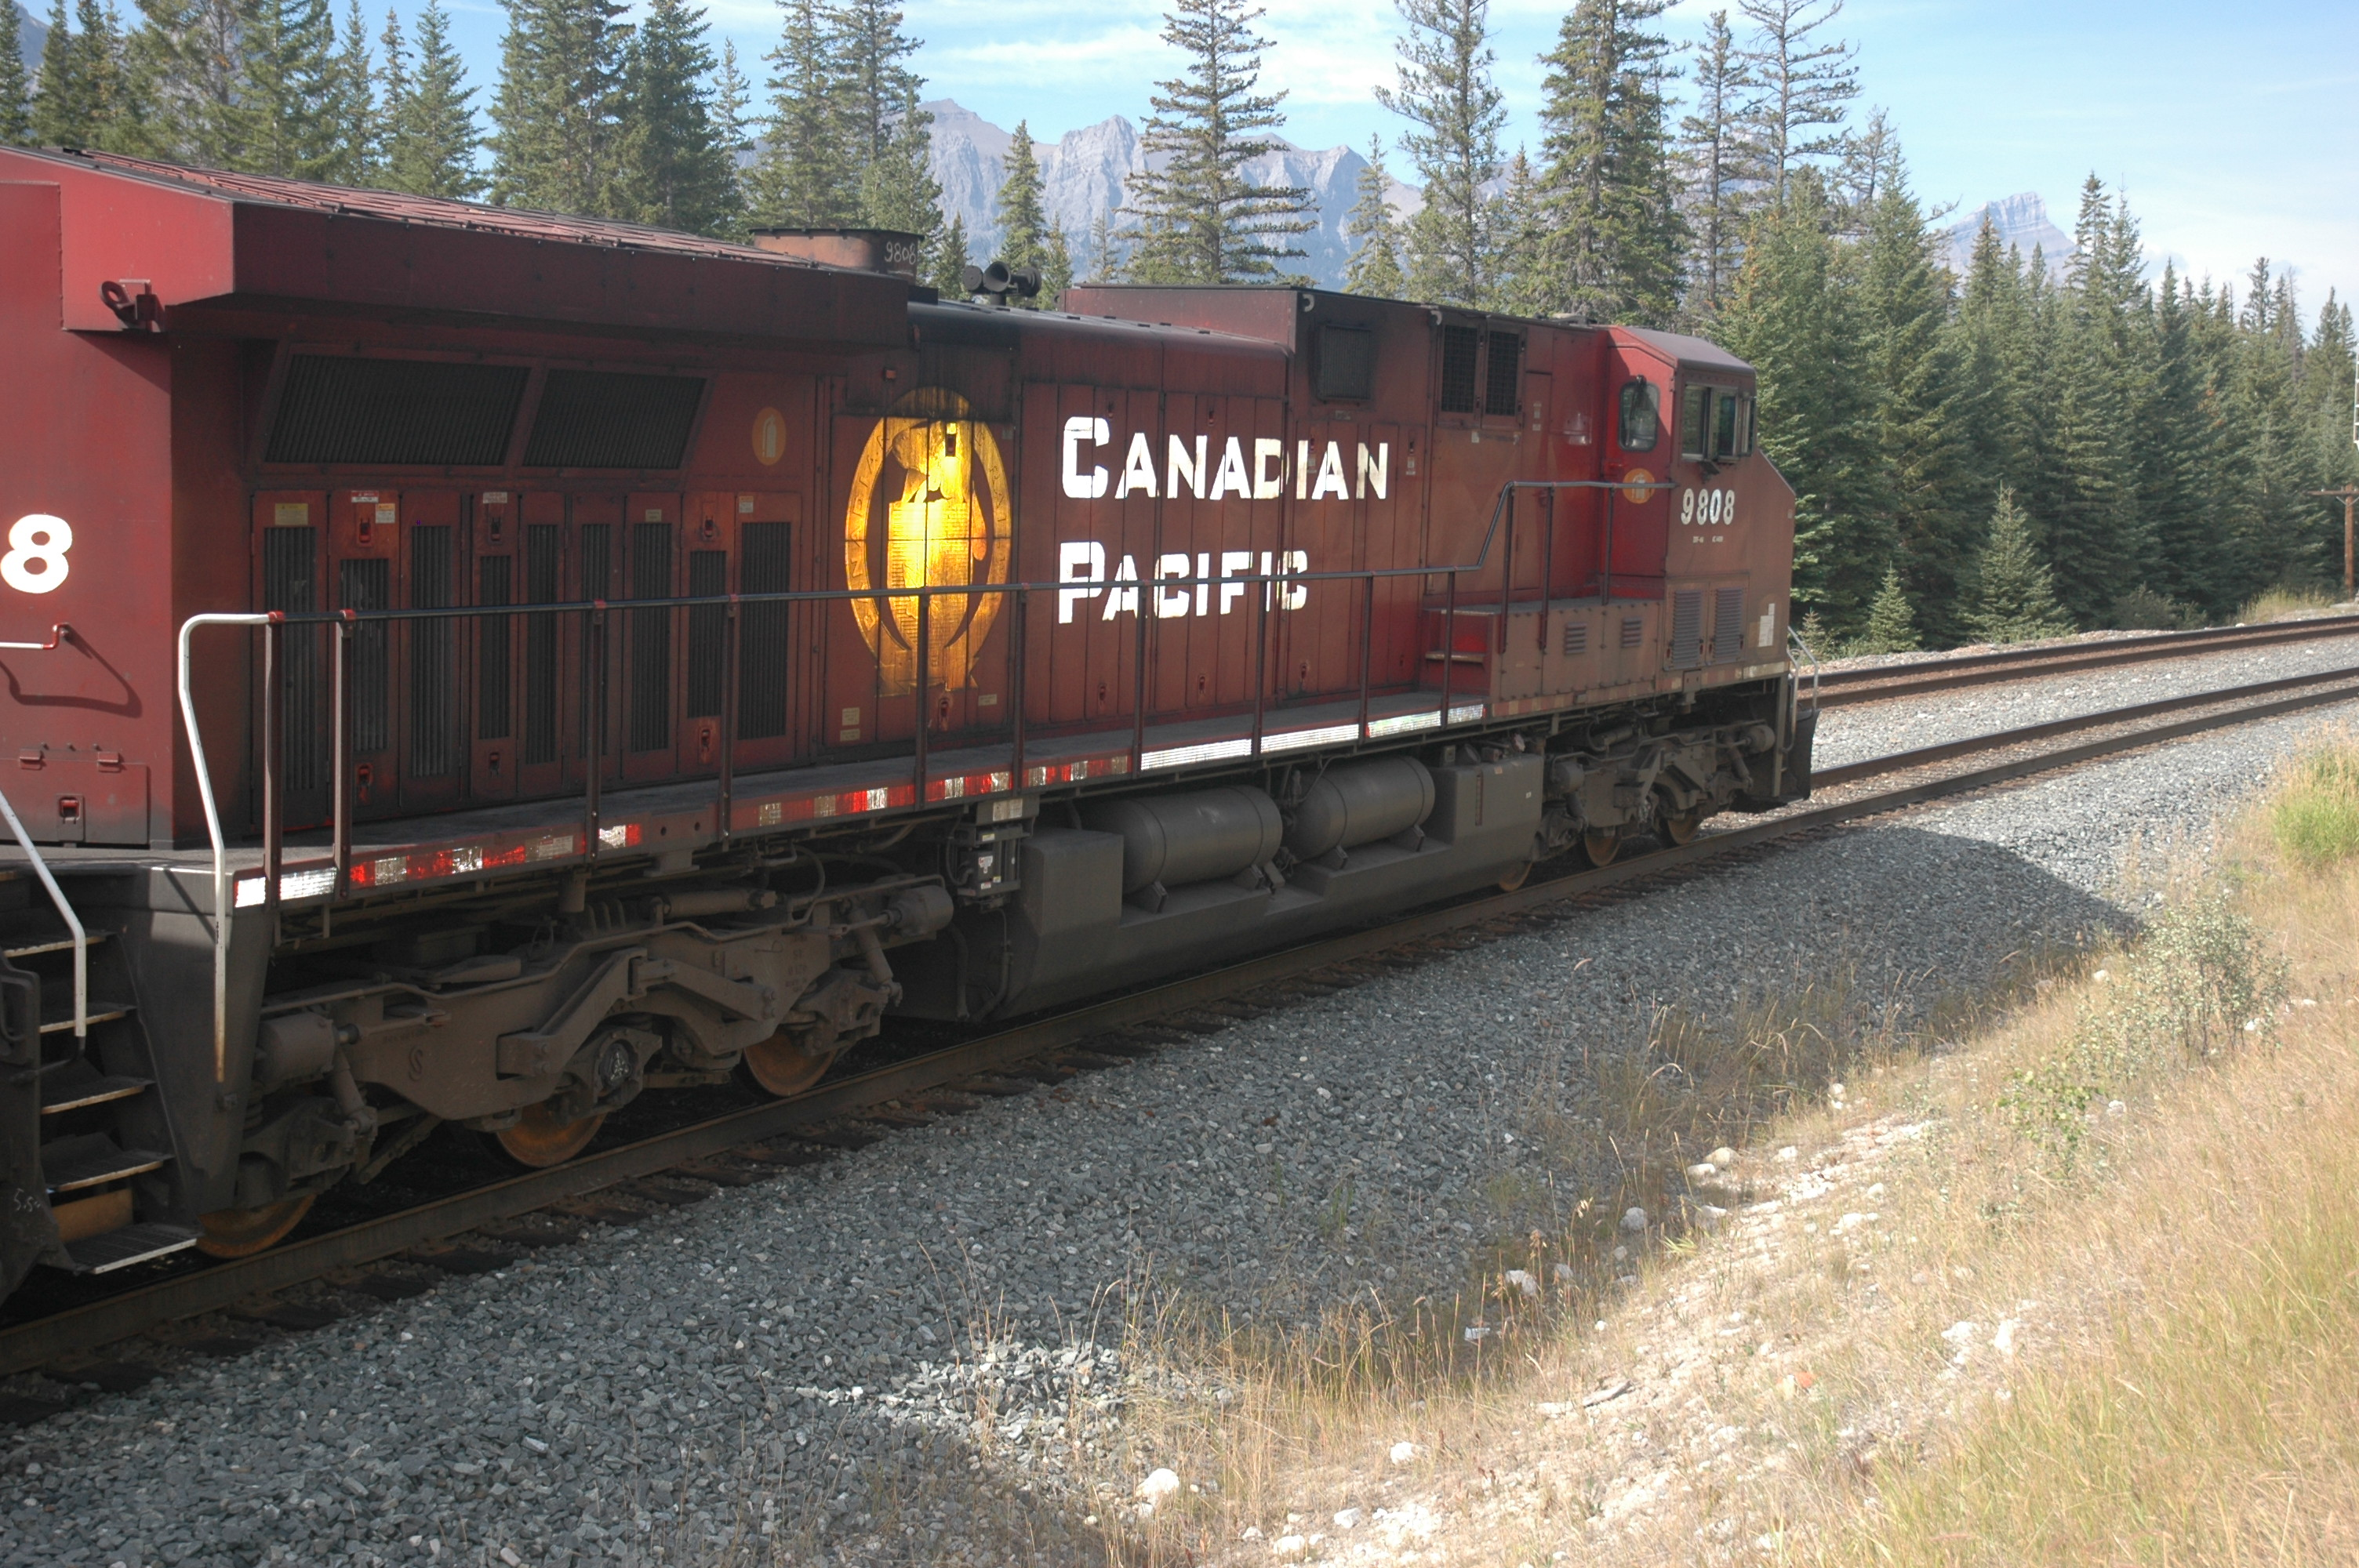 cp_freight_engine_ac4400cw_cp9808_right.jpg